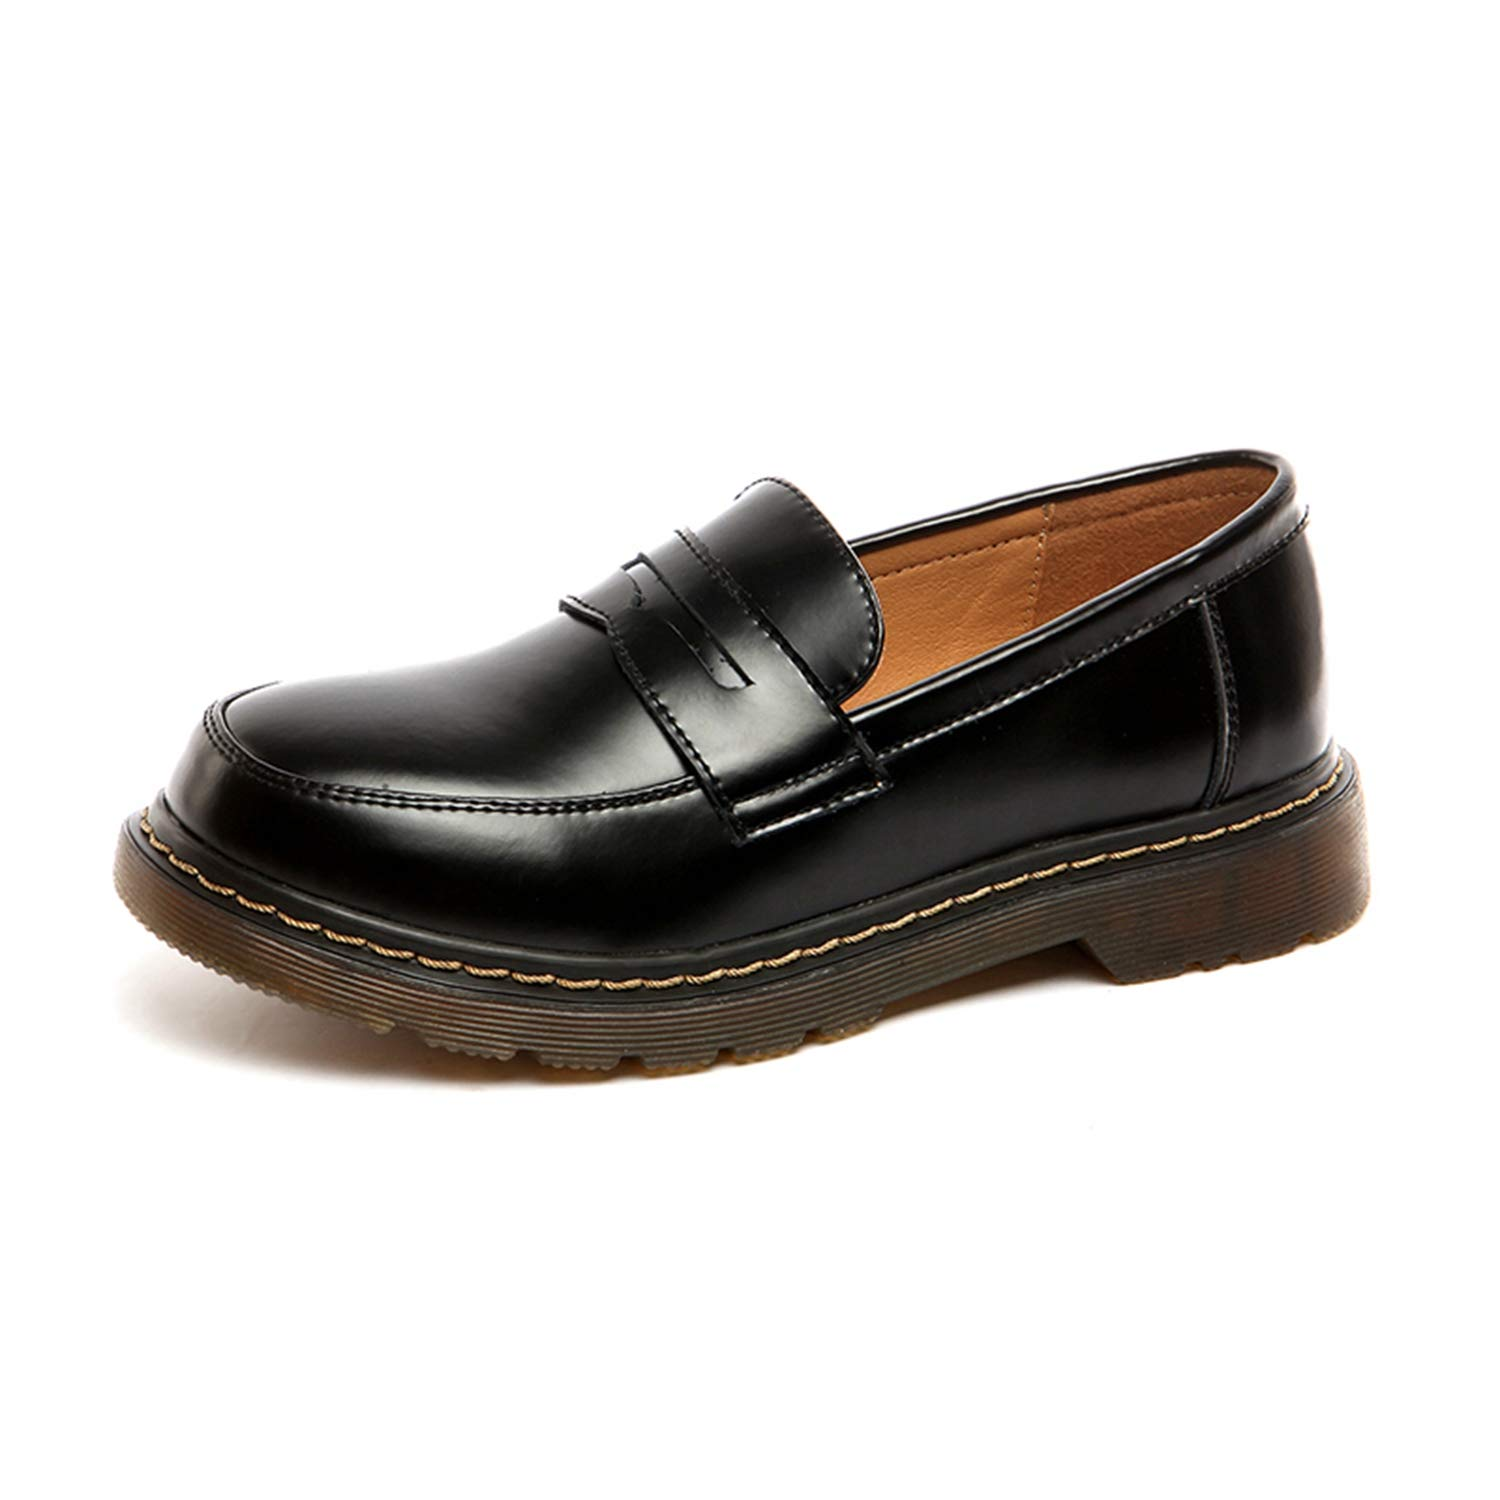 Marvin Cook-Retro British Oxford Shoes for Women Genuine Leather Flats Slip On Shoes Round Toe Loafers Oxfords